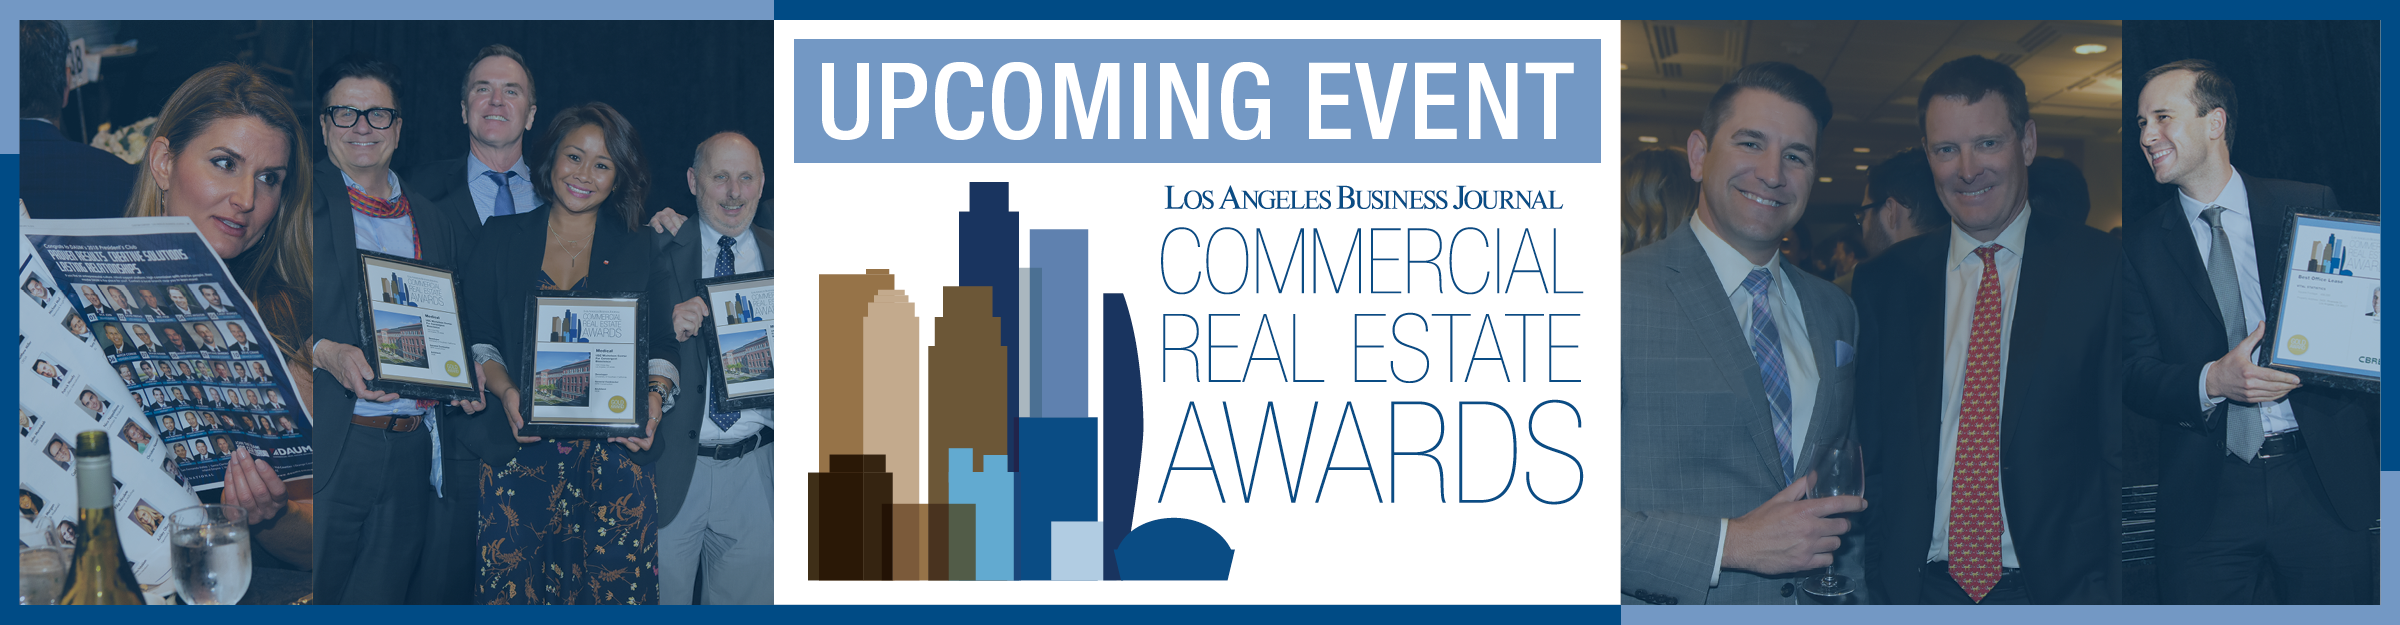 2021 EVENTS | Los Angeles Business Journal